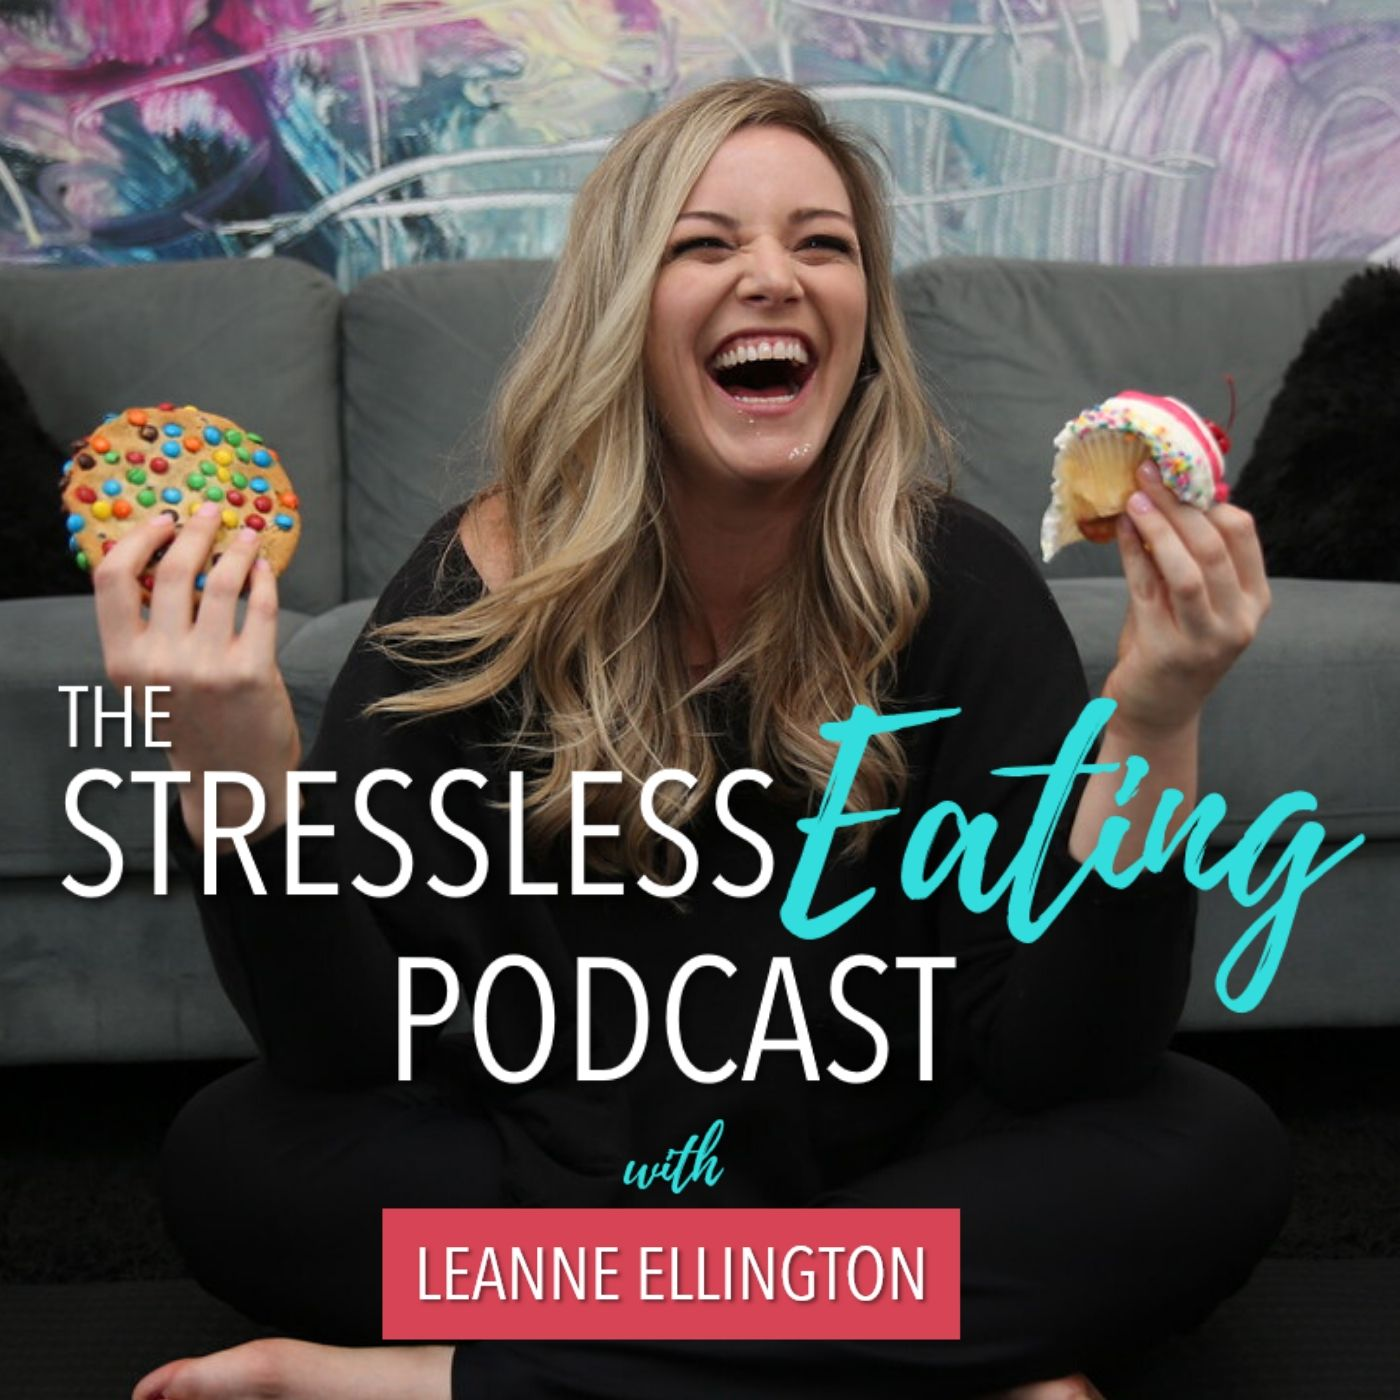 004: Why Most Therapy Doesn't Work For Food & Body Struggles show art